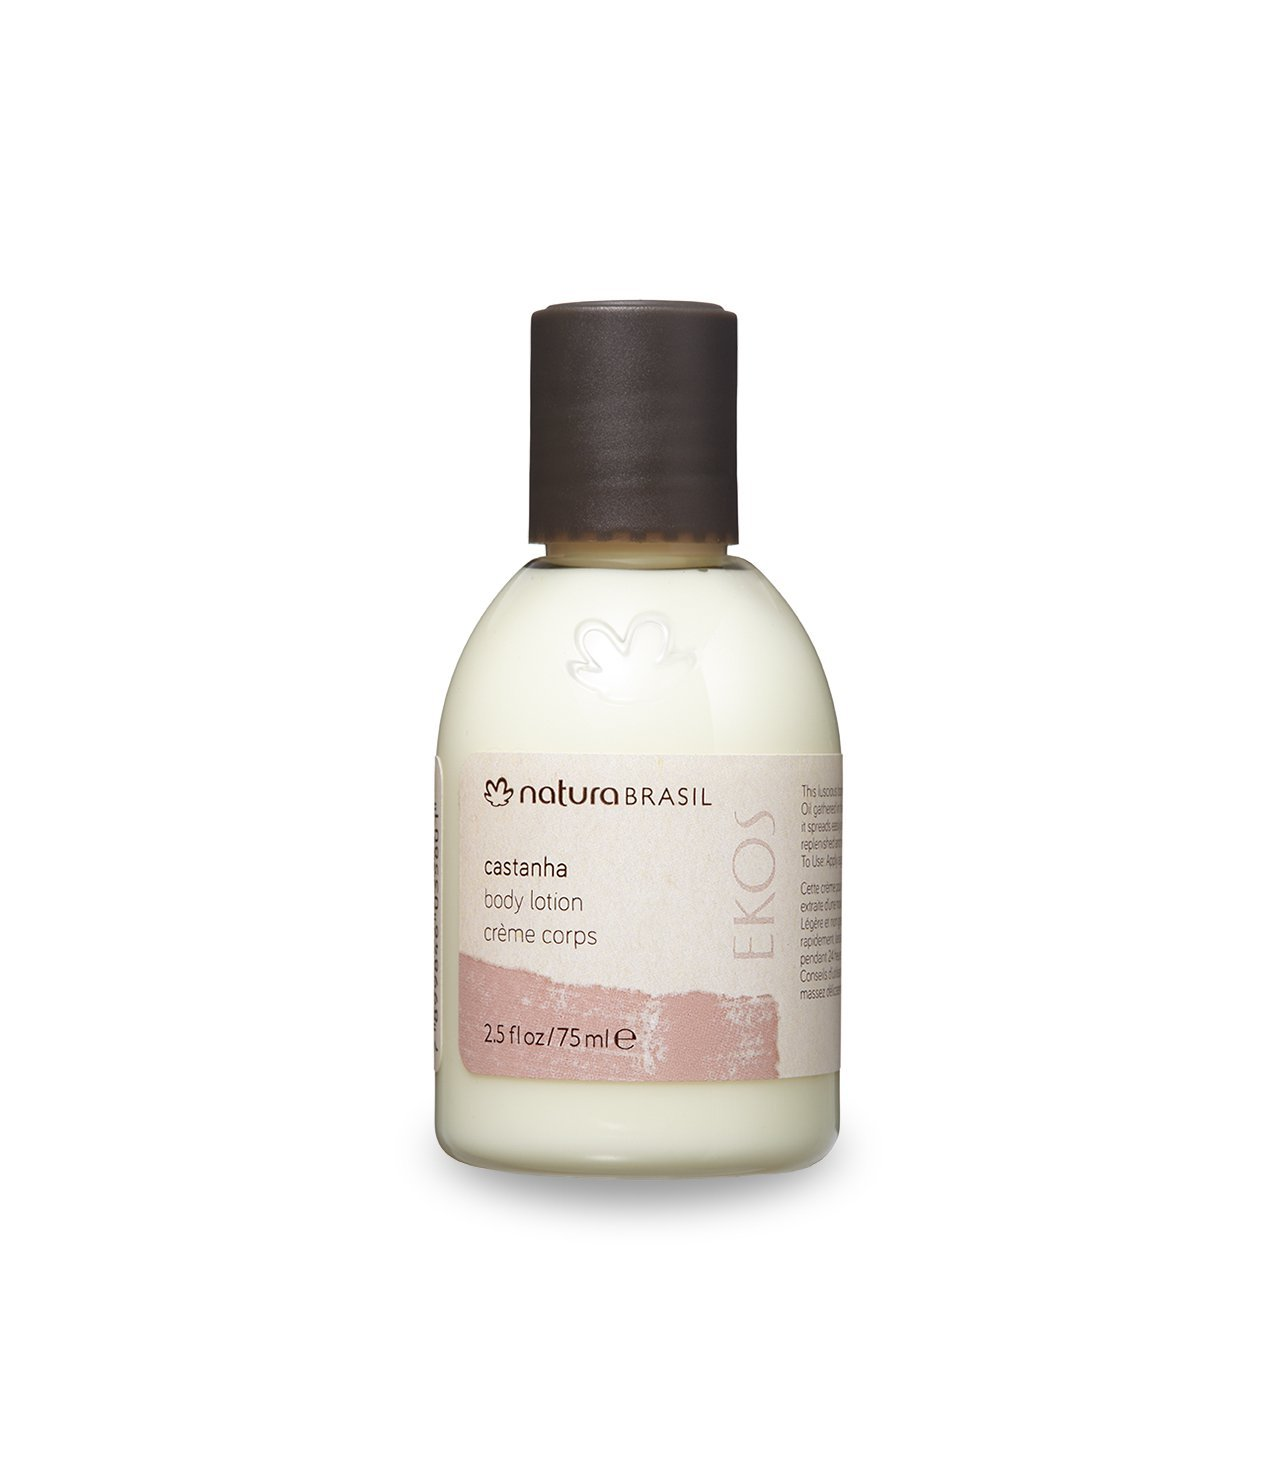 Castanha Body Lotion_mobile - 2.5fl.oz / 75ml